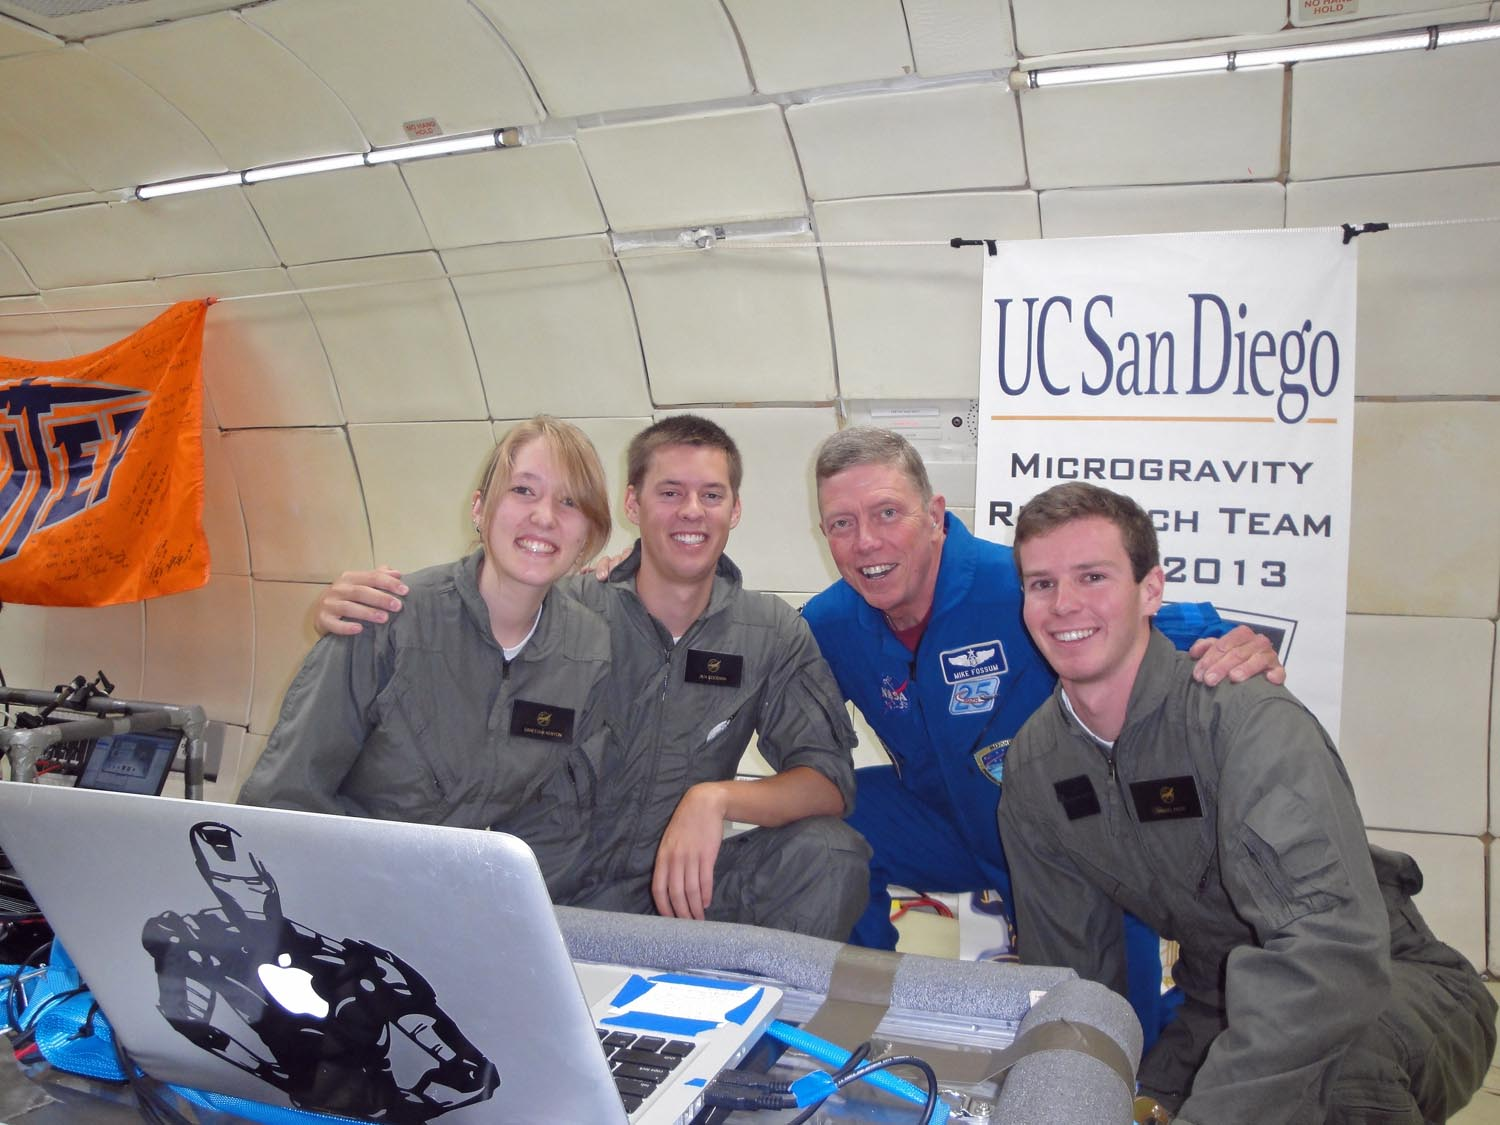 UCSD Microgravity Team and Mike Fossum